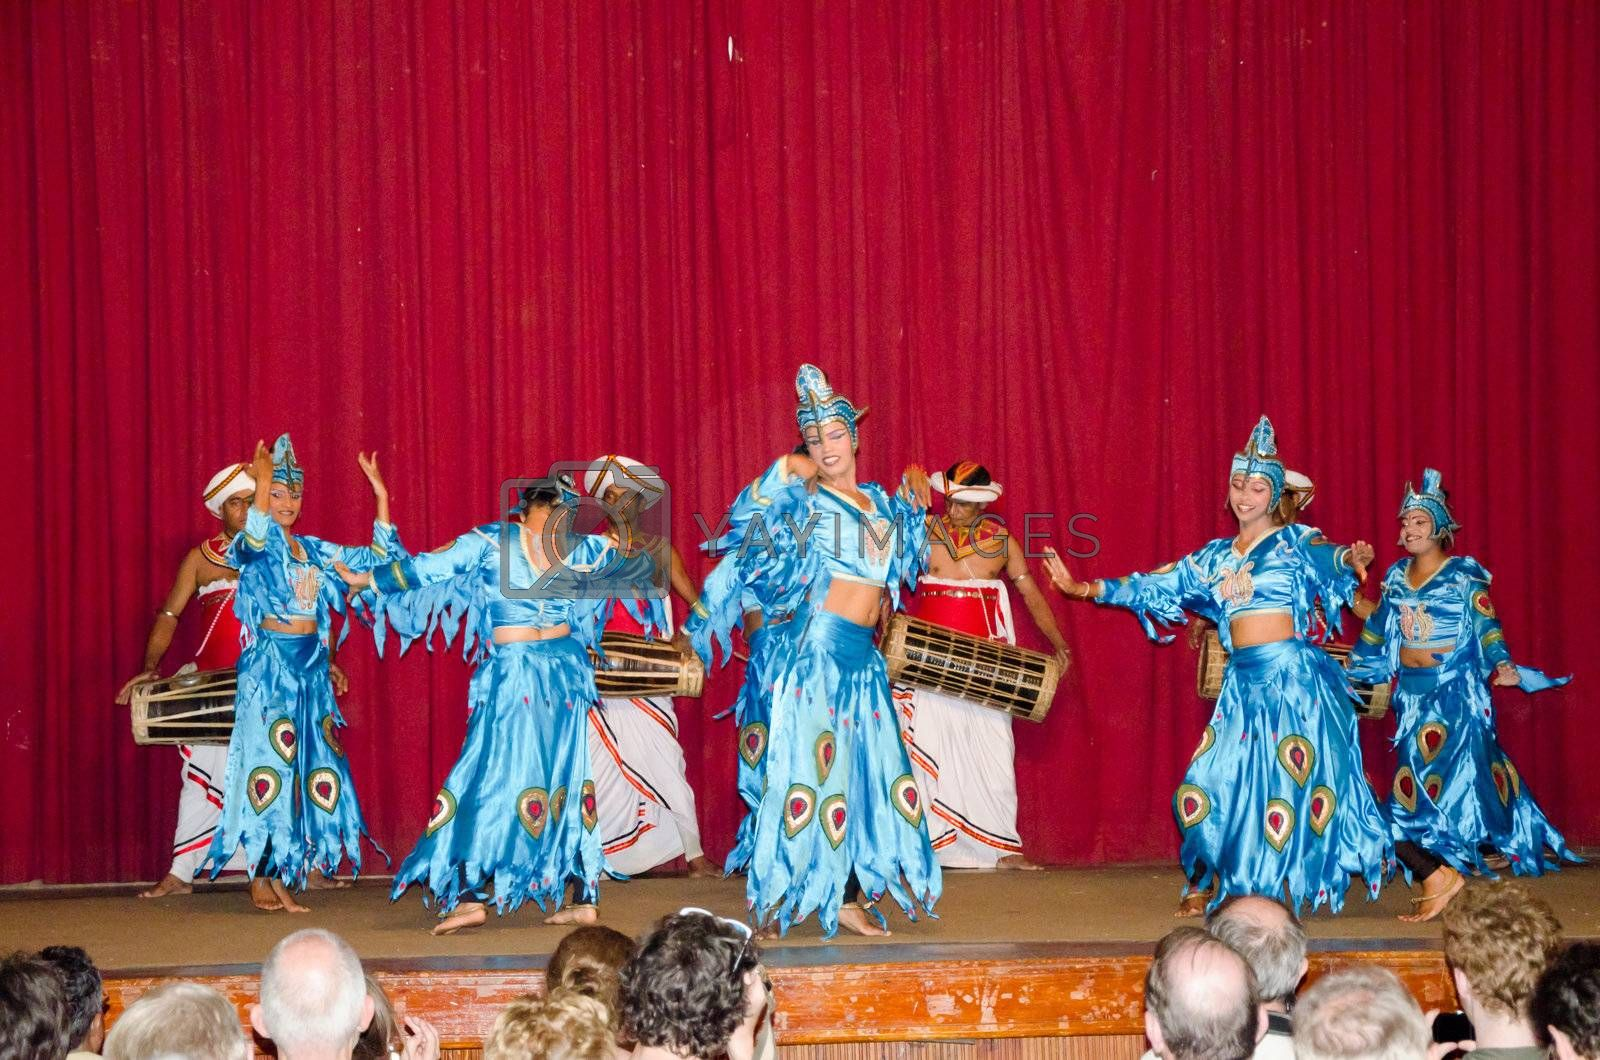 Kandy, Sri Lanka, December 7, 2011. Folk dances in the local theater scene.